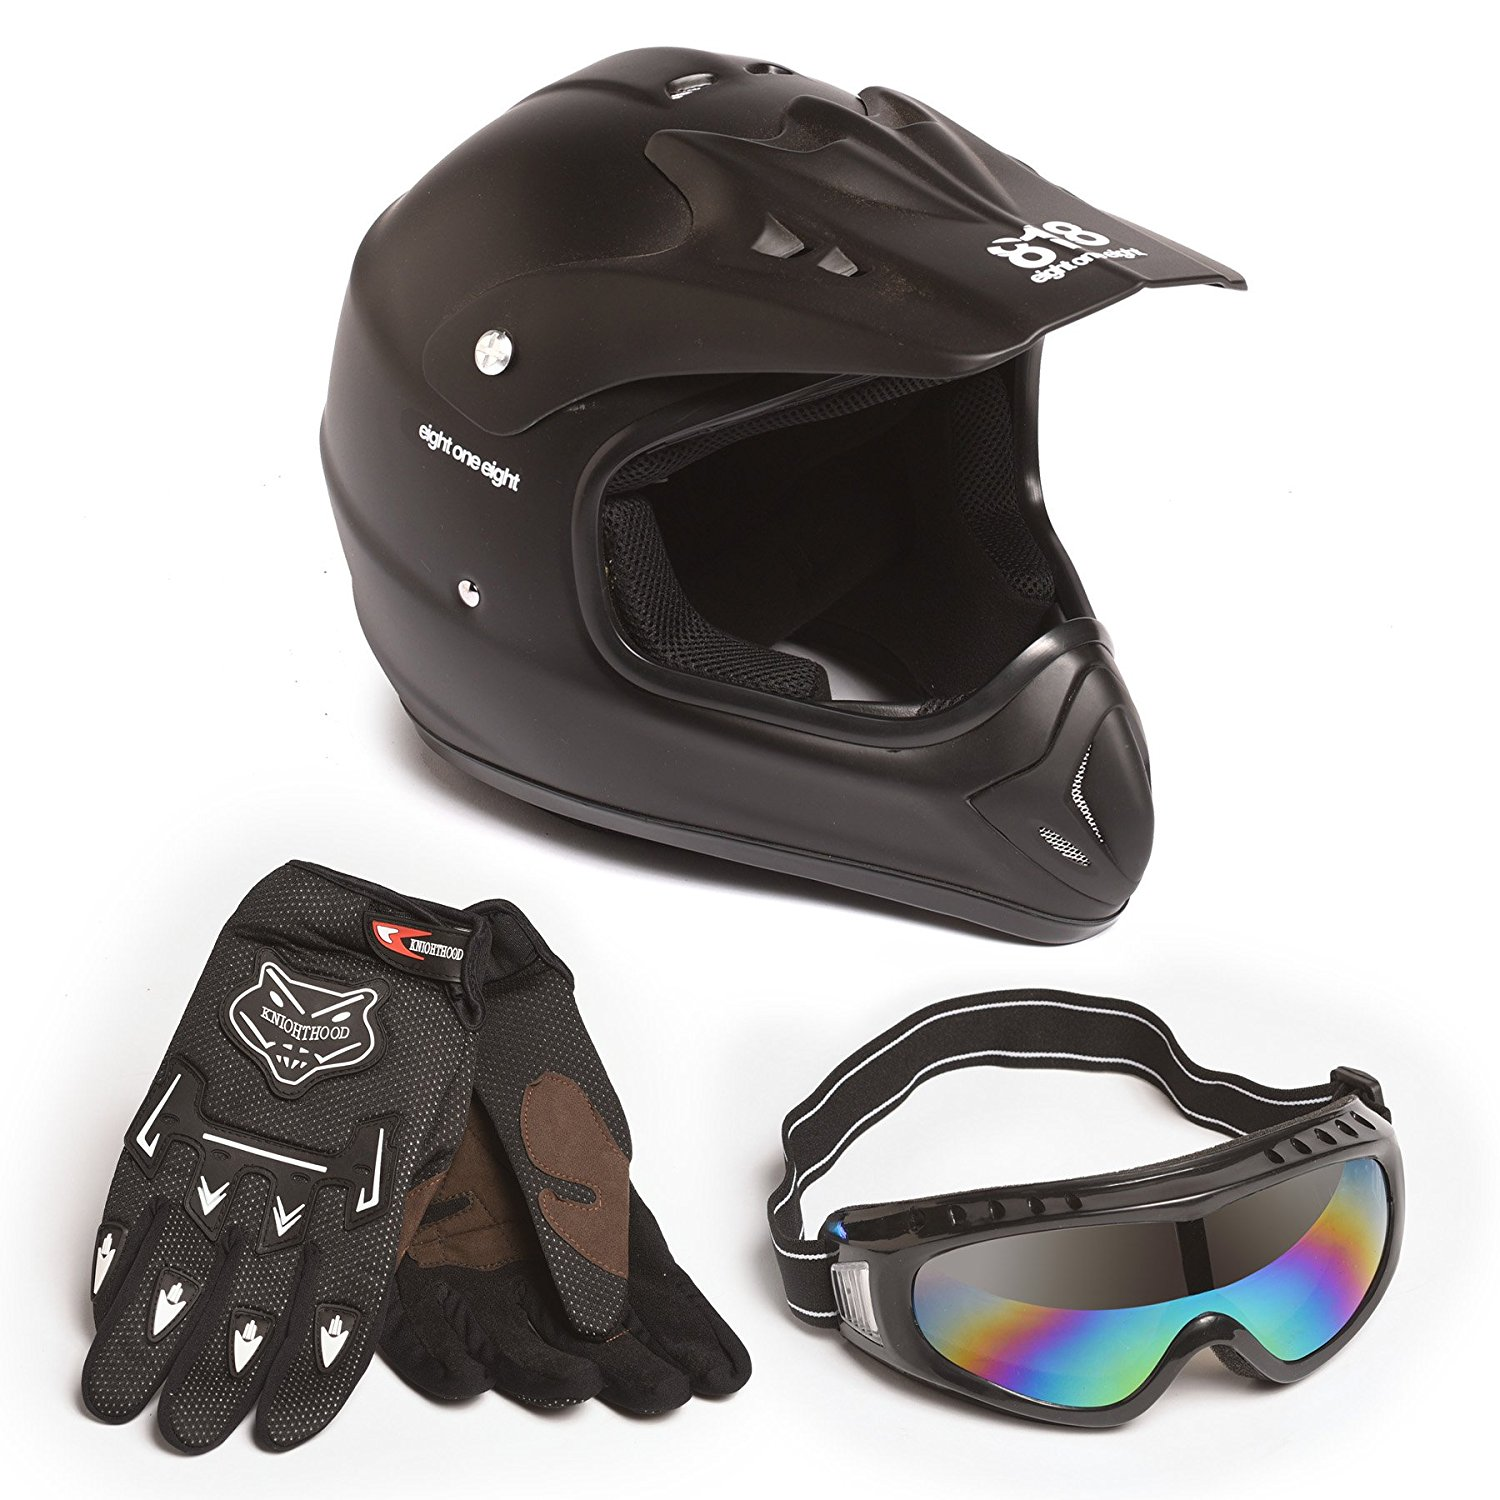 Adult MX Offroad Helmet COMBO Pack includes Offroad Helmet Gloves Goggles for Motocross ATV Dirt Bike BLACK (XLarge) (Large) (Large) (Small) (Large) (Large) (Large) (Large) (Medium)